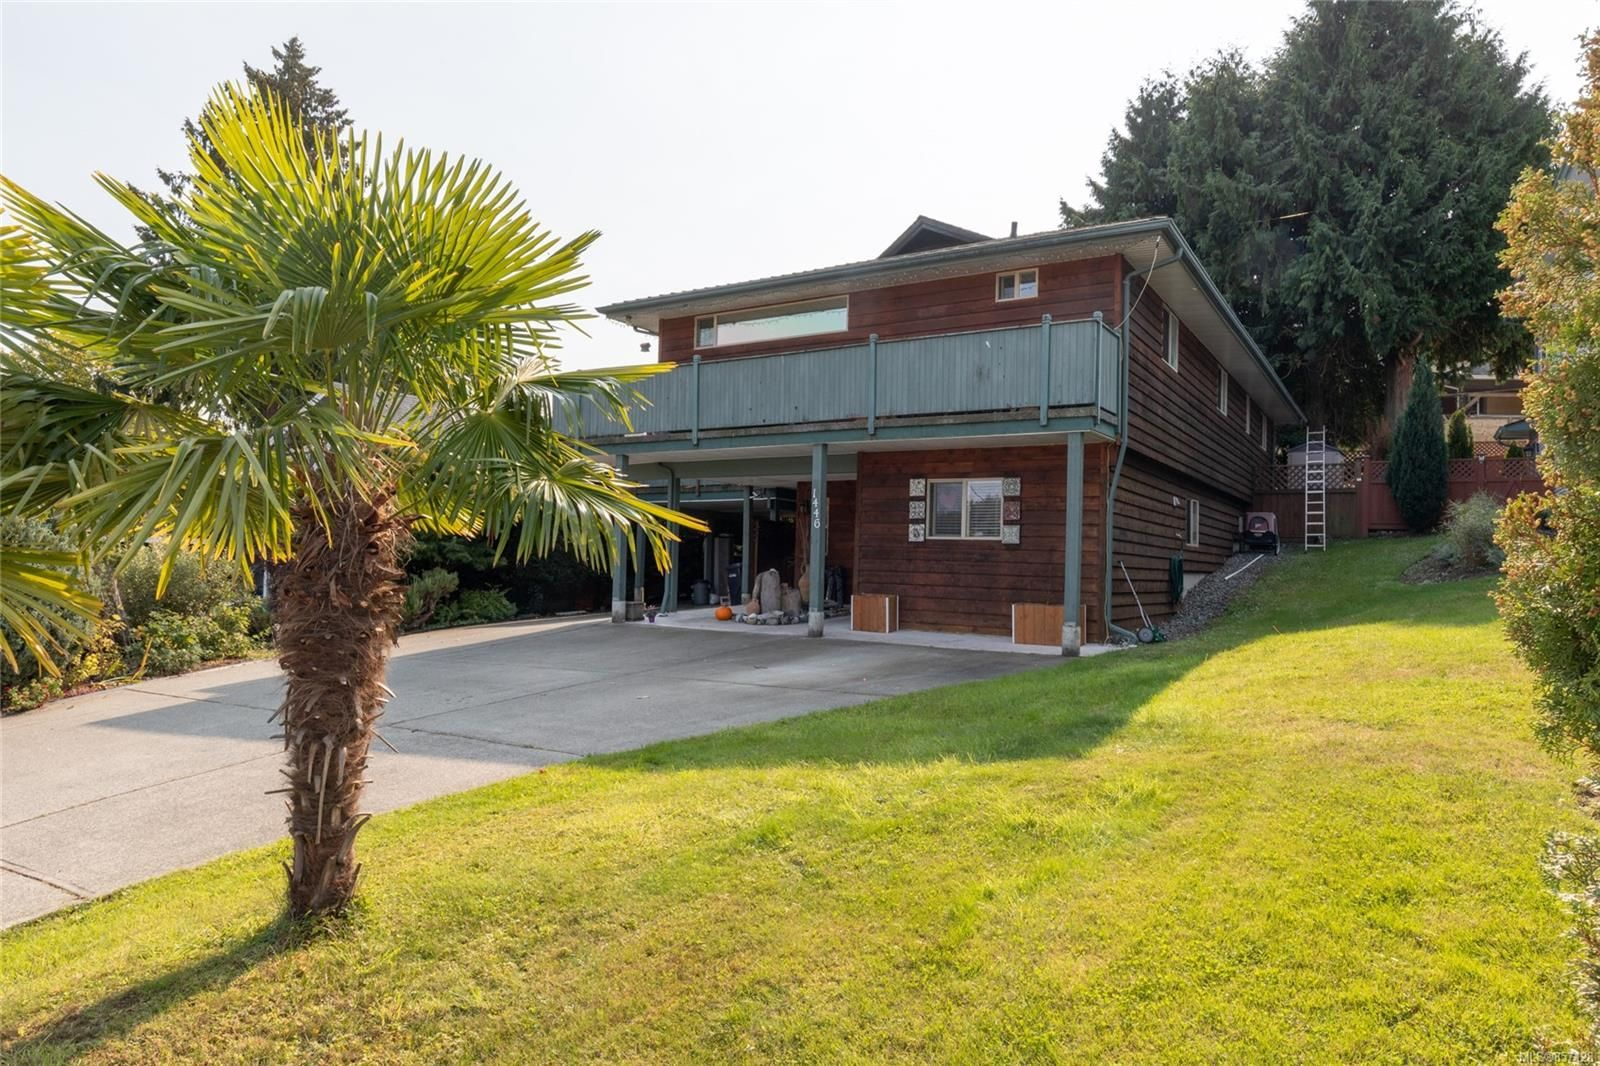 Main Photo: 1446 Loat St in : Na Departure Bay House for sale (Nanaimo)  : MLS®# 857128